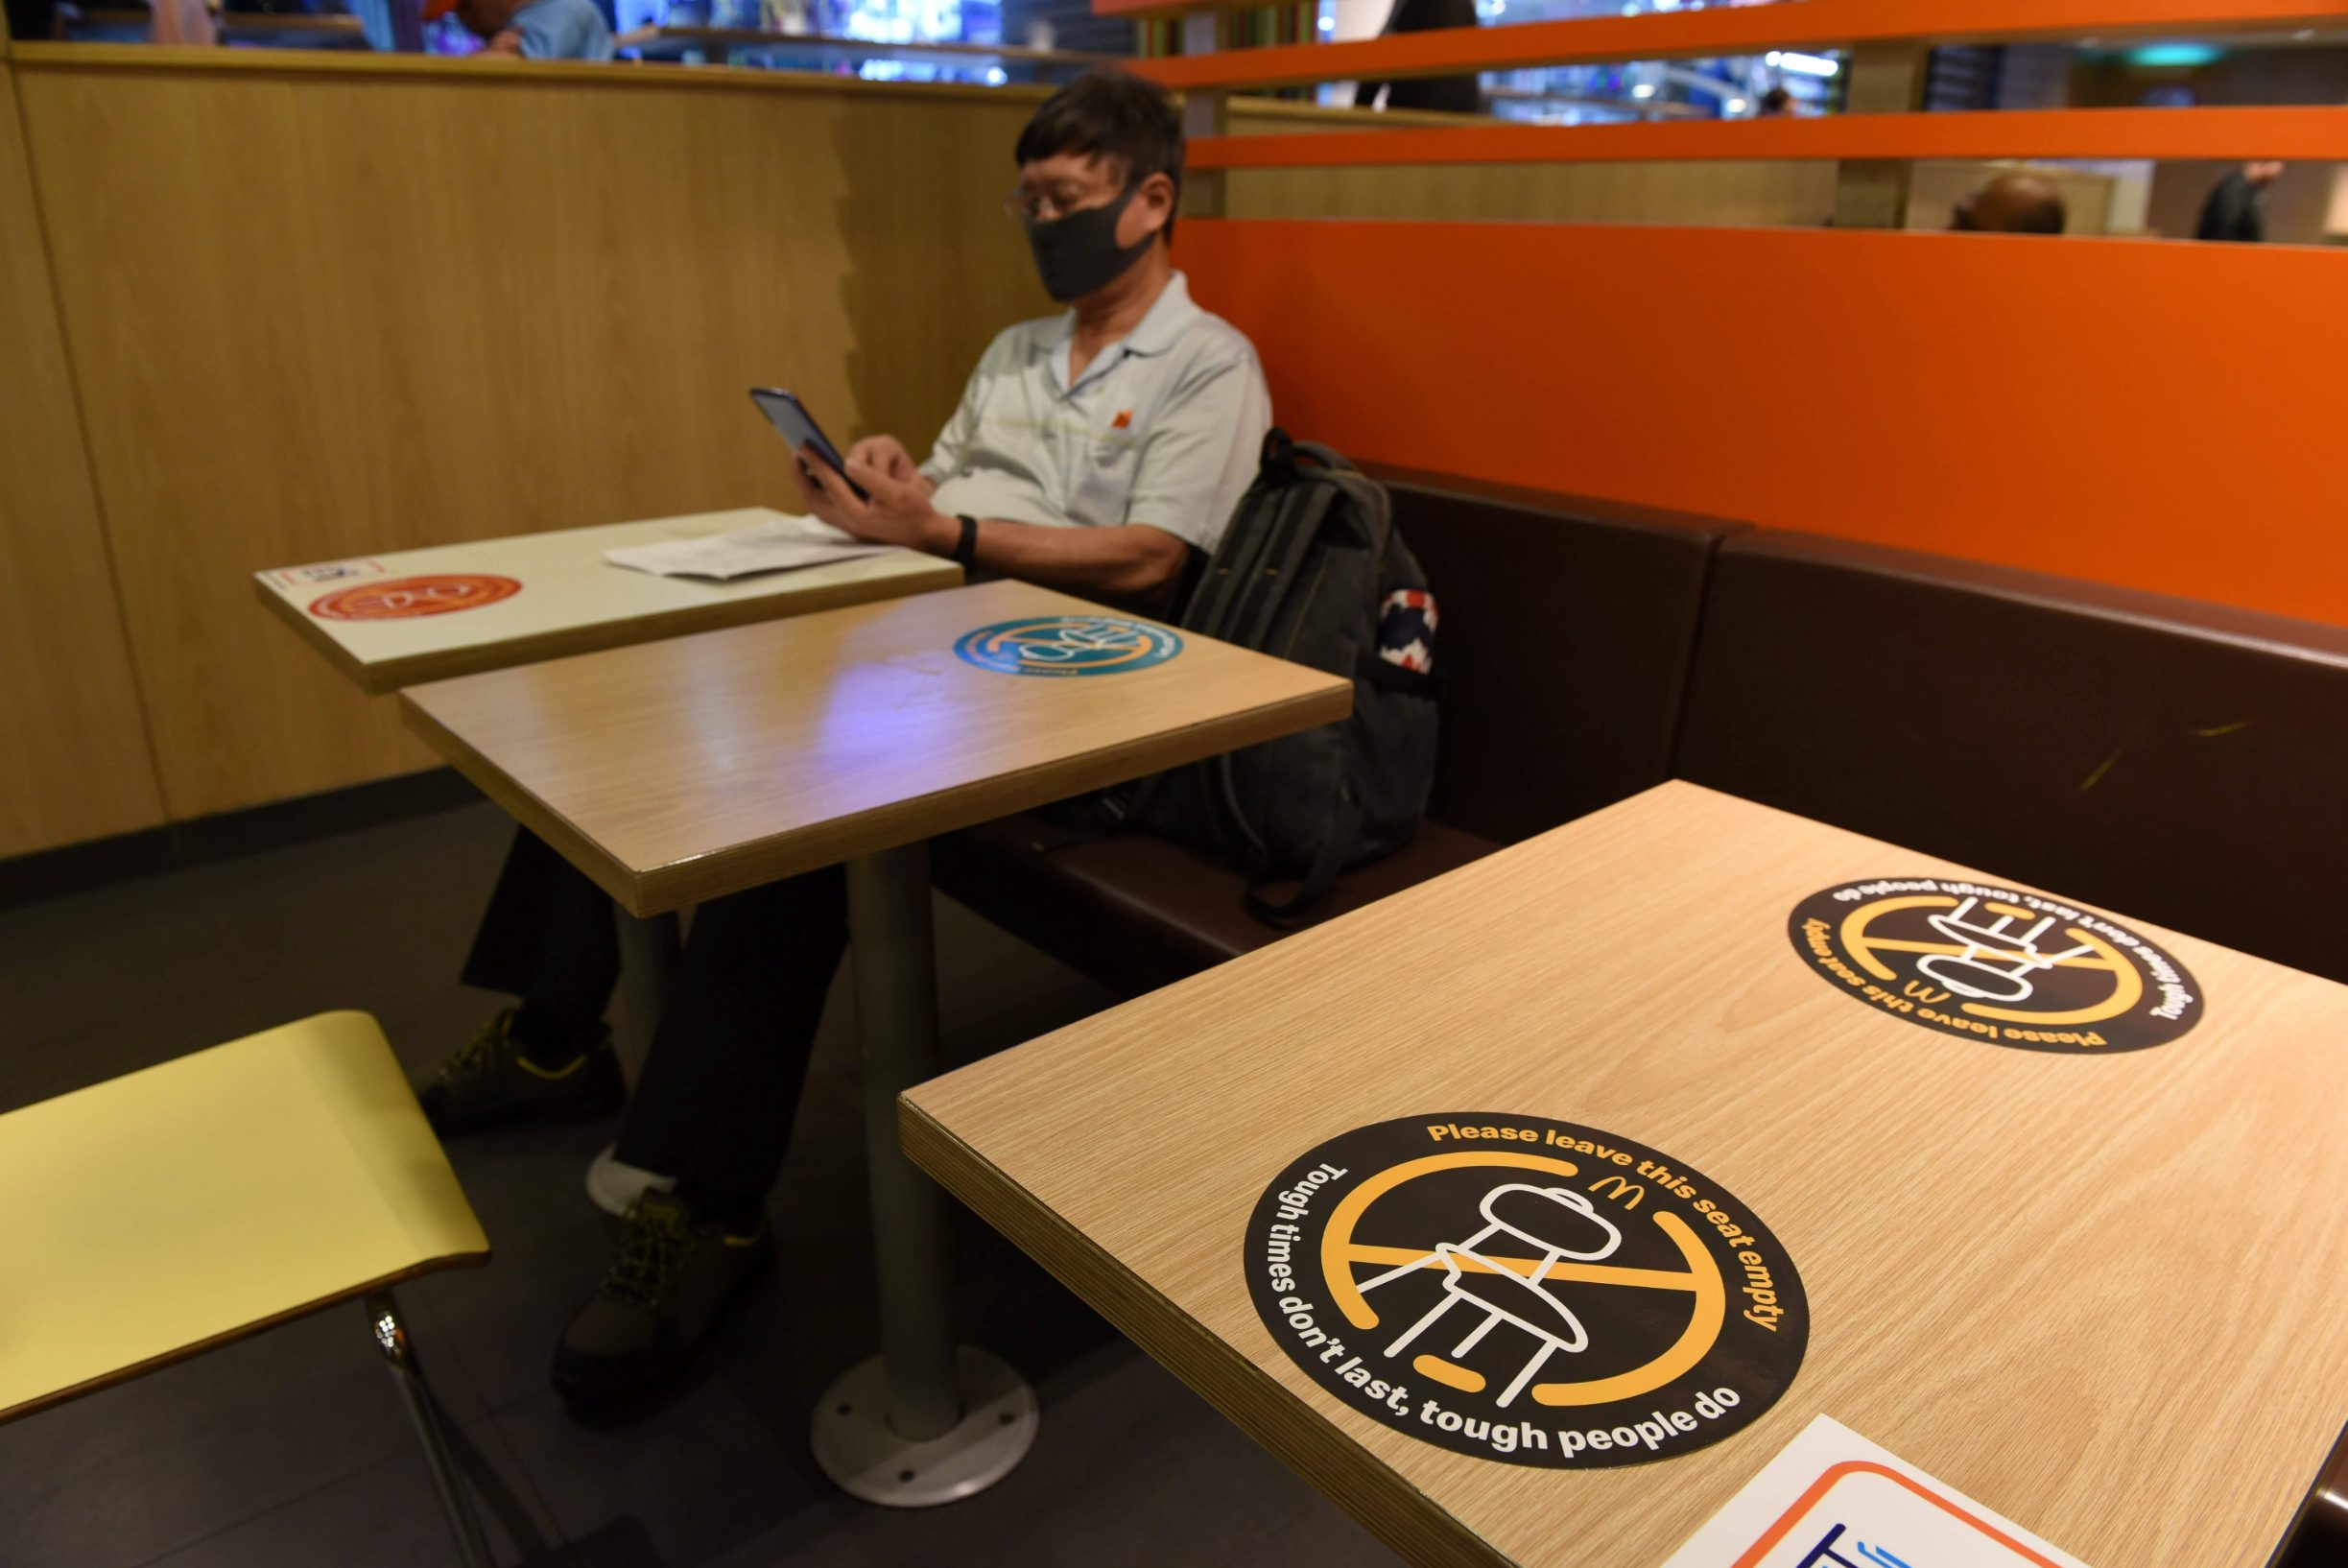 A notice signage, as a preventive measure against the COVID-19 novel coronavirus, is posted on a restaurant table as authorities implement social distancing in Singapore on March 28, 2020. (Photo by Catherine LAI / AFP)